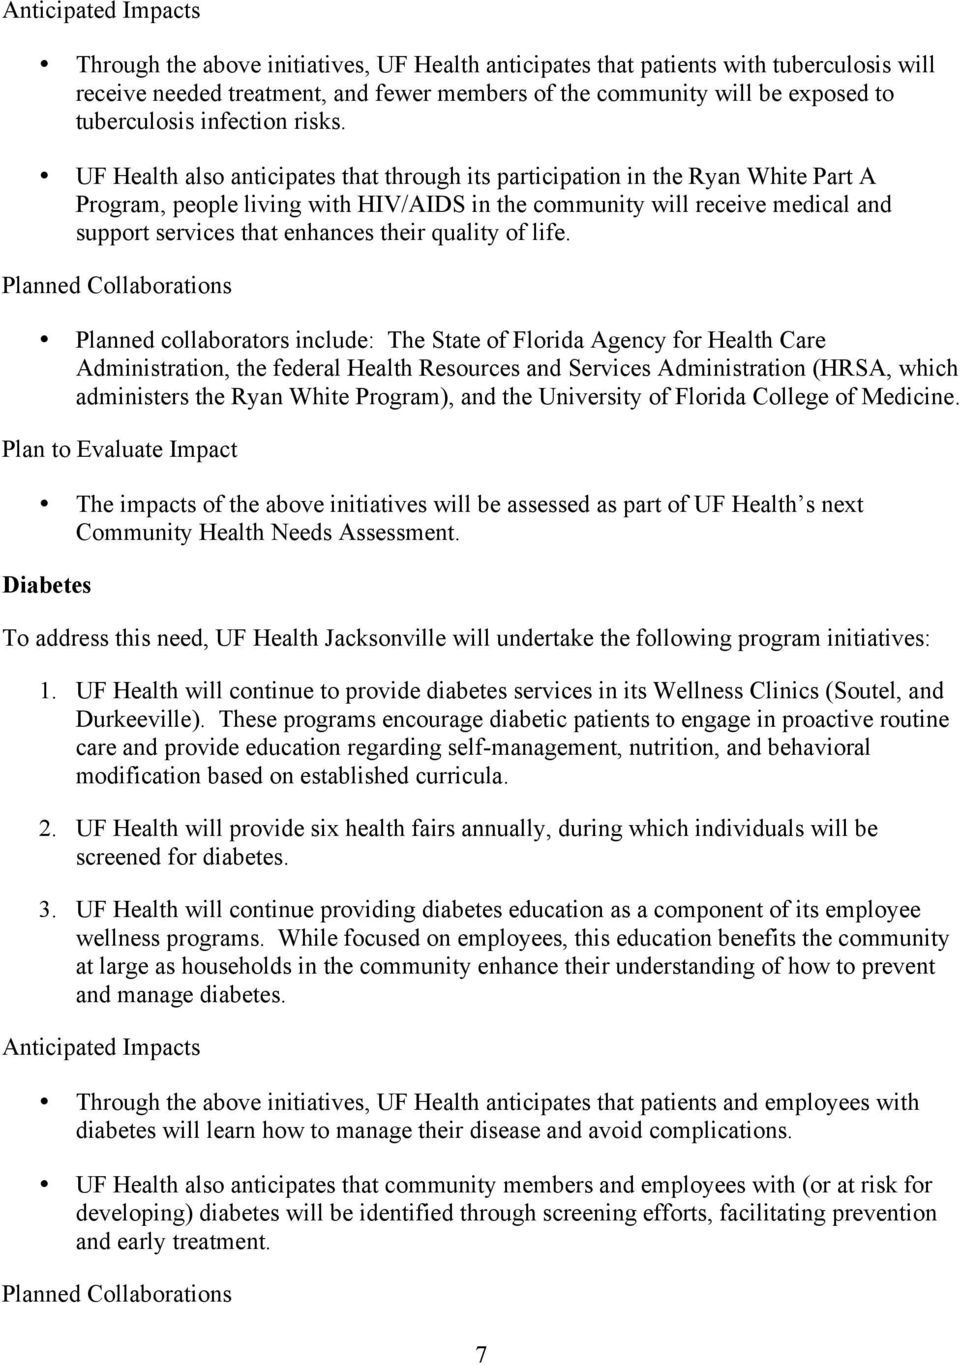 UF Health also anticipates that through its participation in the Ryan White Part A Program, people living with HIV/AIDS in the community will receive medical and support services that enhances their